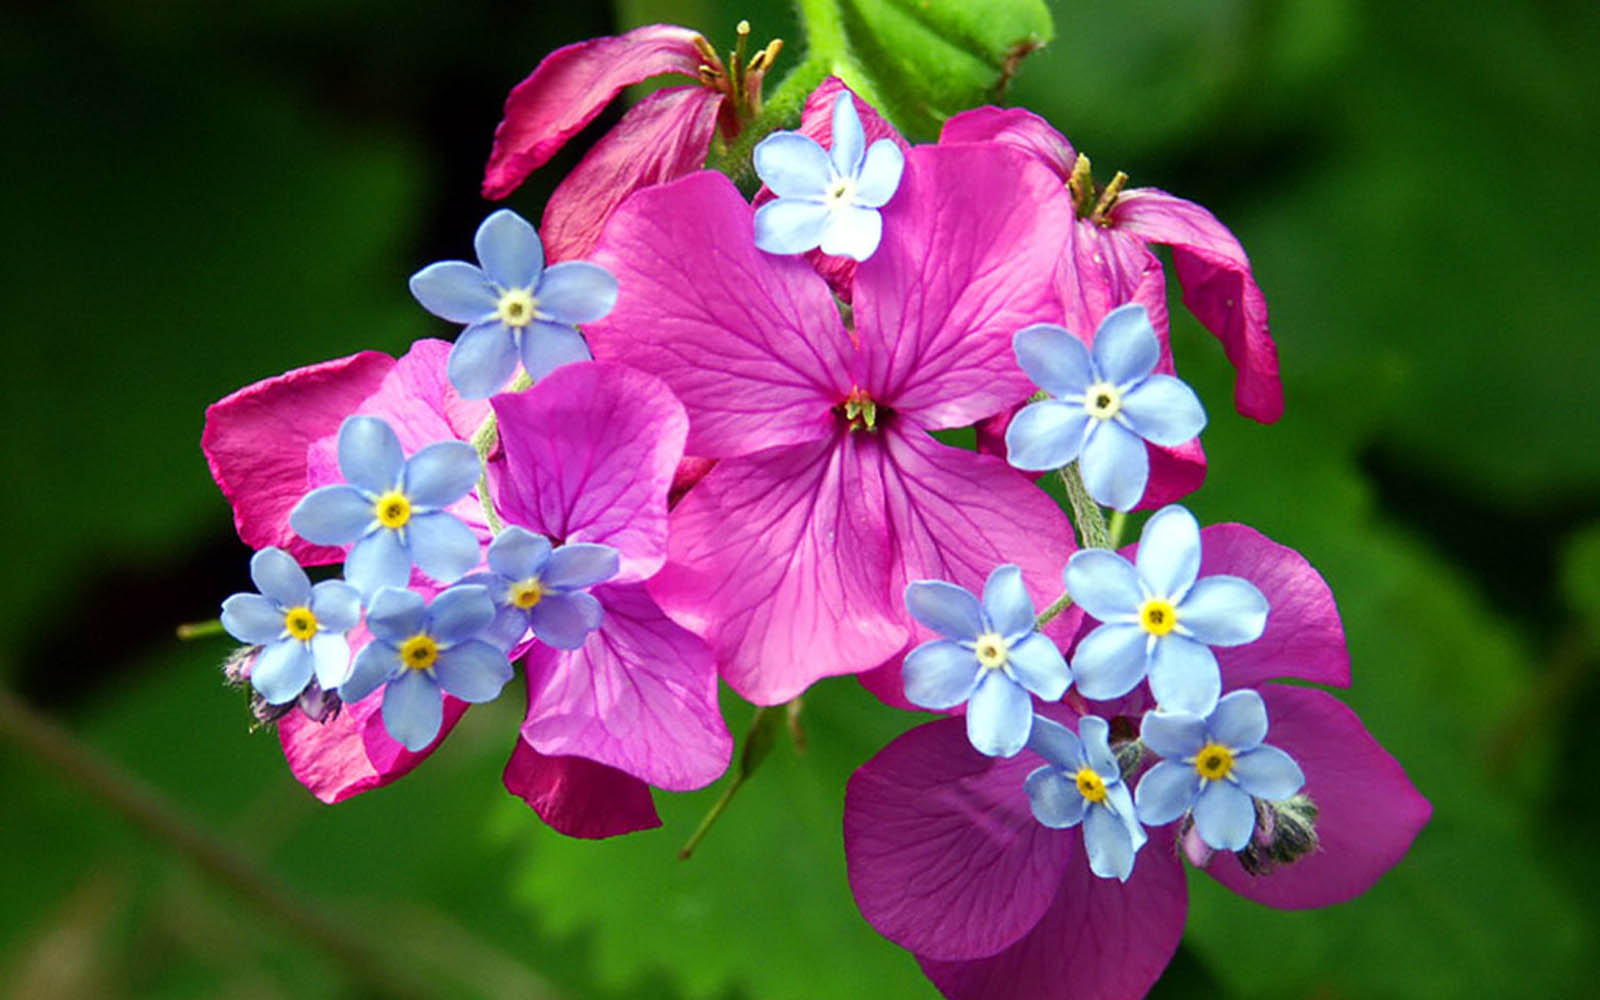 wallpapers: Spring Flowers Wallpapers - photo#47